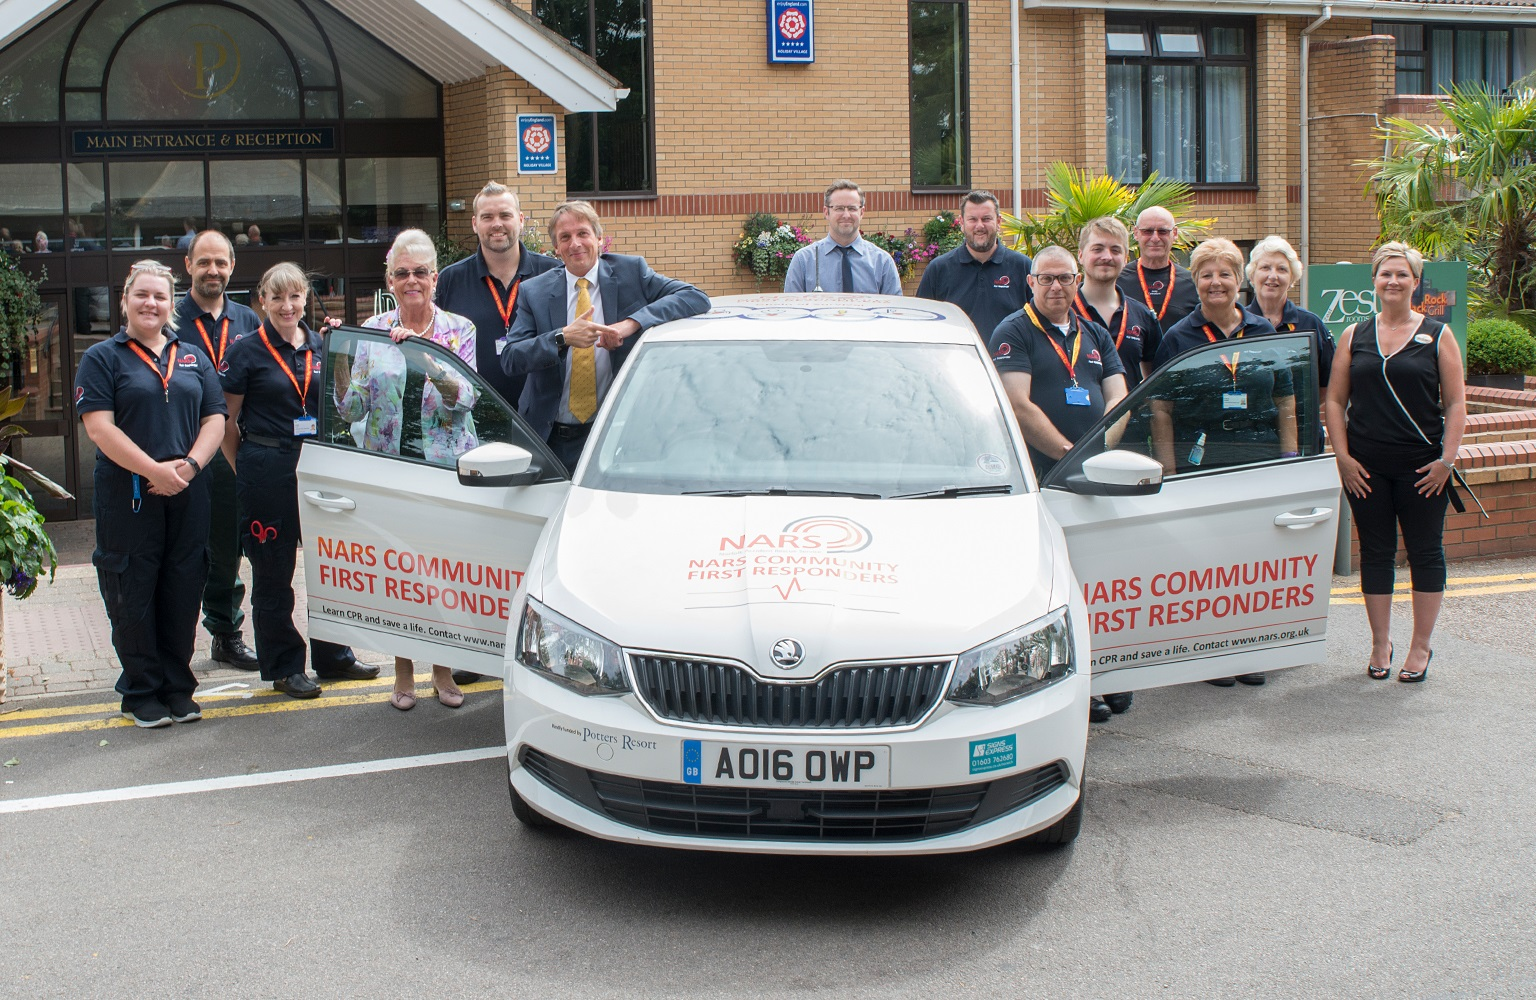 Potters Friends Foundation donates £10,000 for new car to save lives